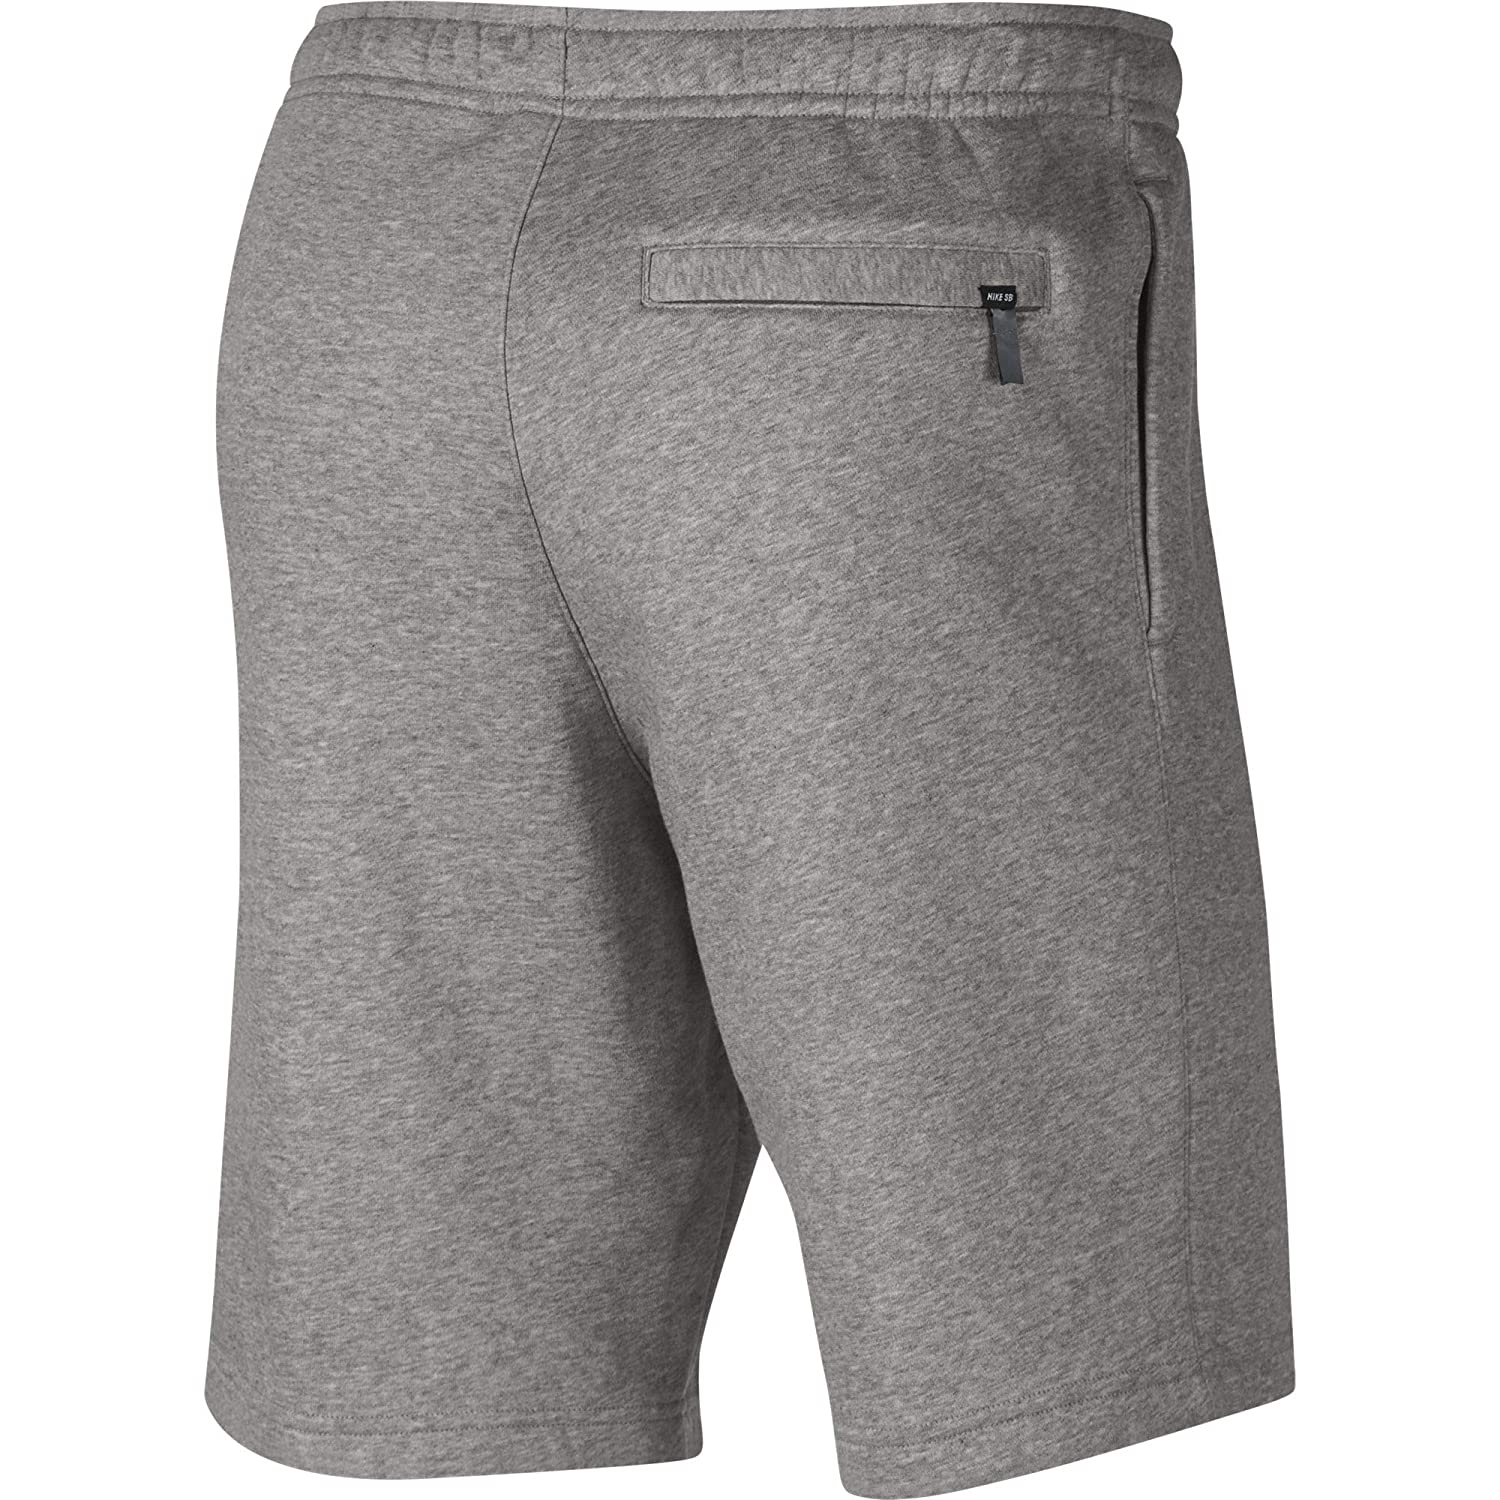 6a41d96e27 Amazon.com: Nike SB Icon Fleece Men's Shorts - AO0560: Clothing